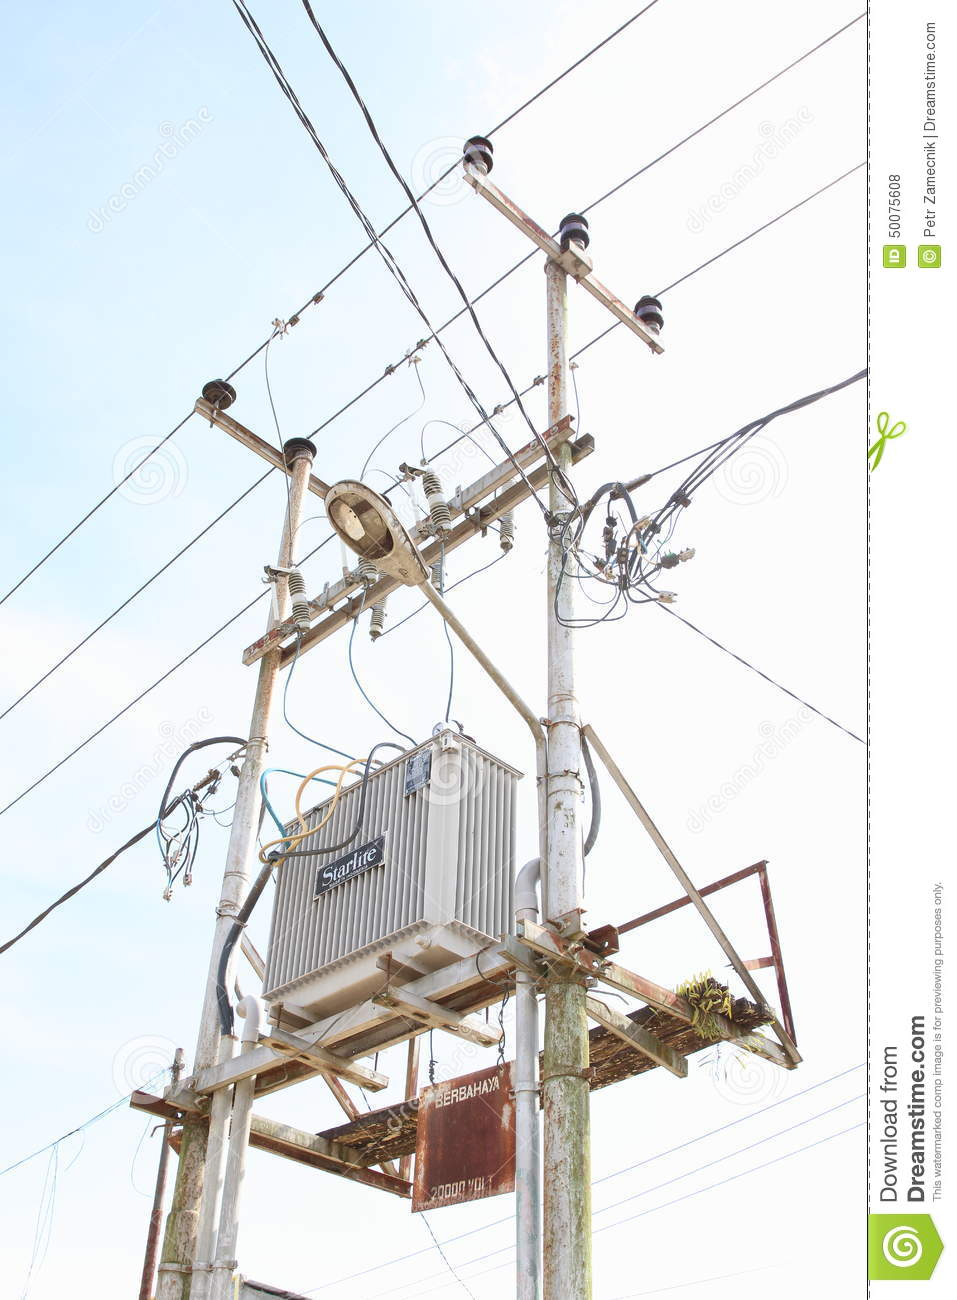 hight resolution of wiring with transformer station